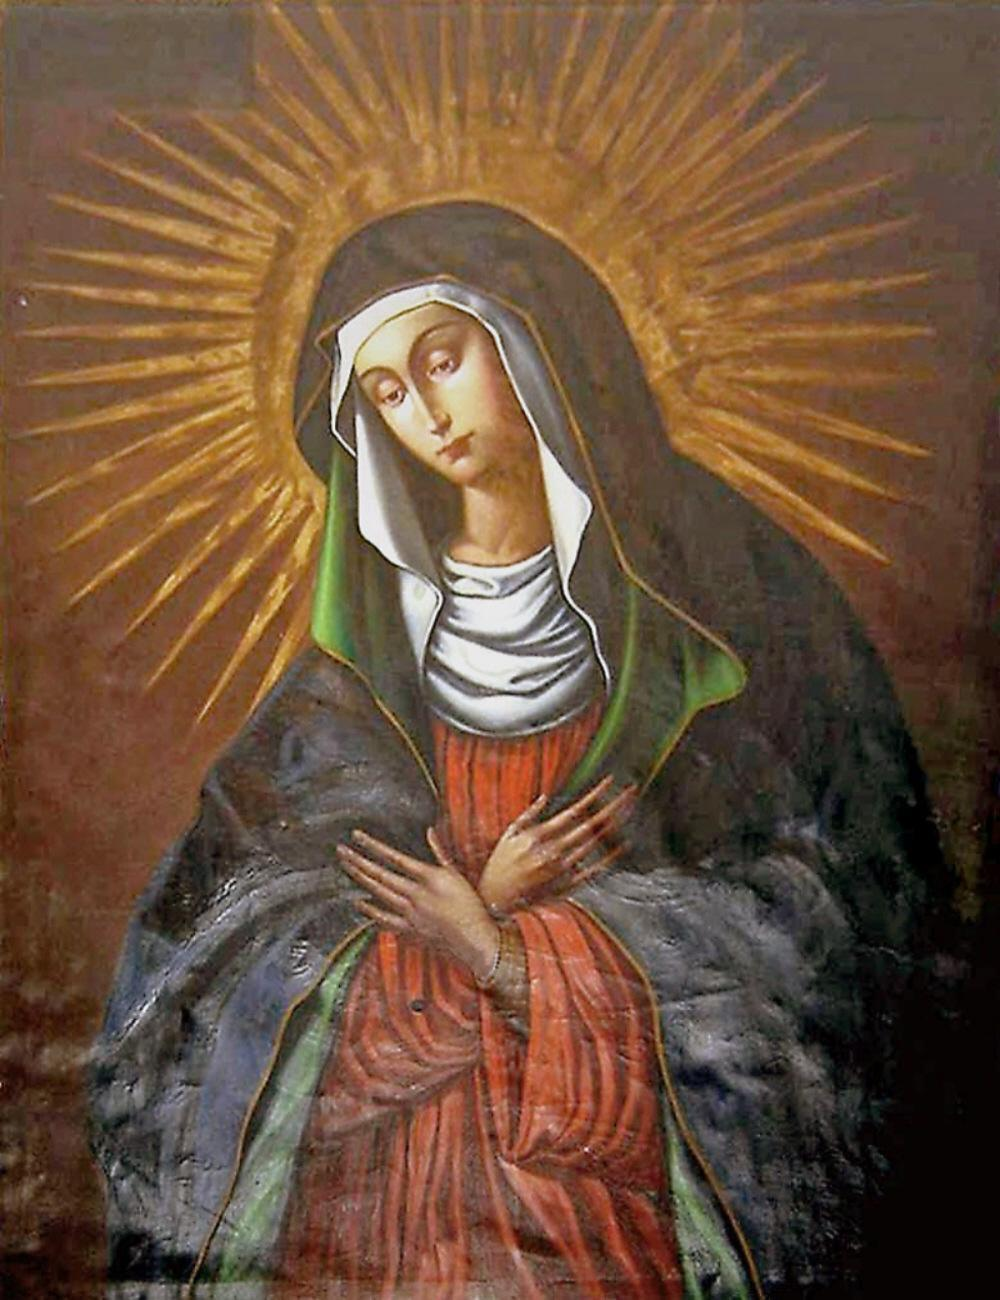 Unknown Artist. Mother of God of Aušros Vartai (Ostrobrama) (Vilnius, Lithuania). 1630s